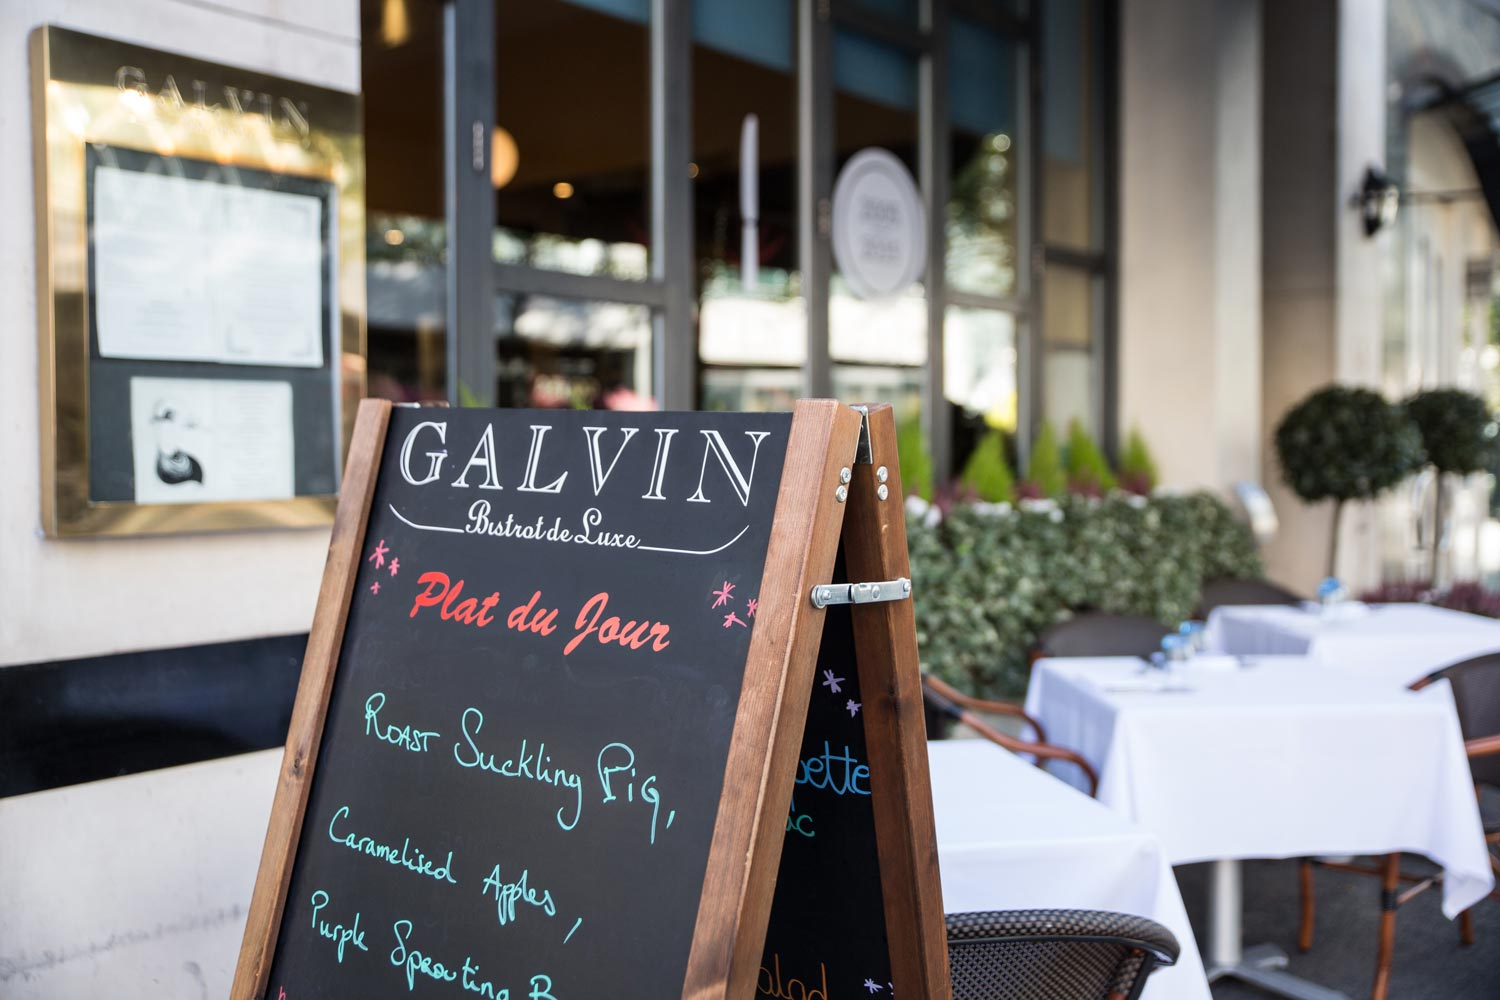 Fabulous Flavours Of France At Galvin Bistrot De Luxe 8